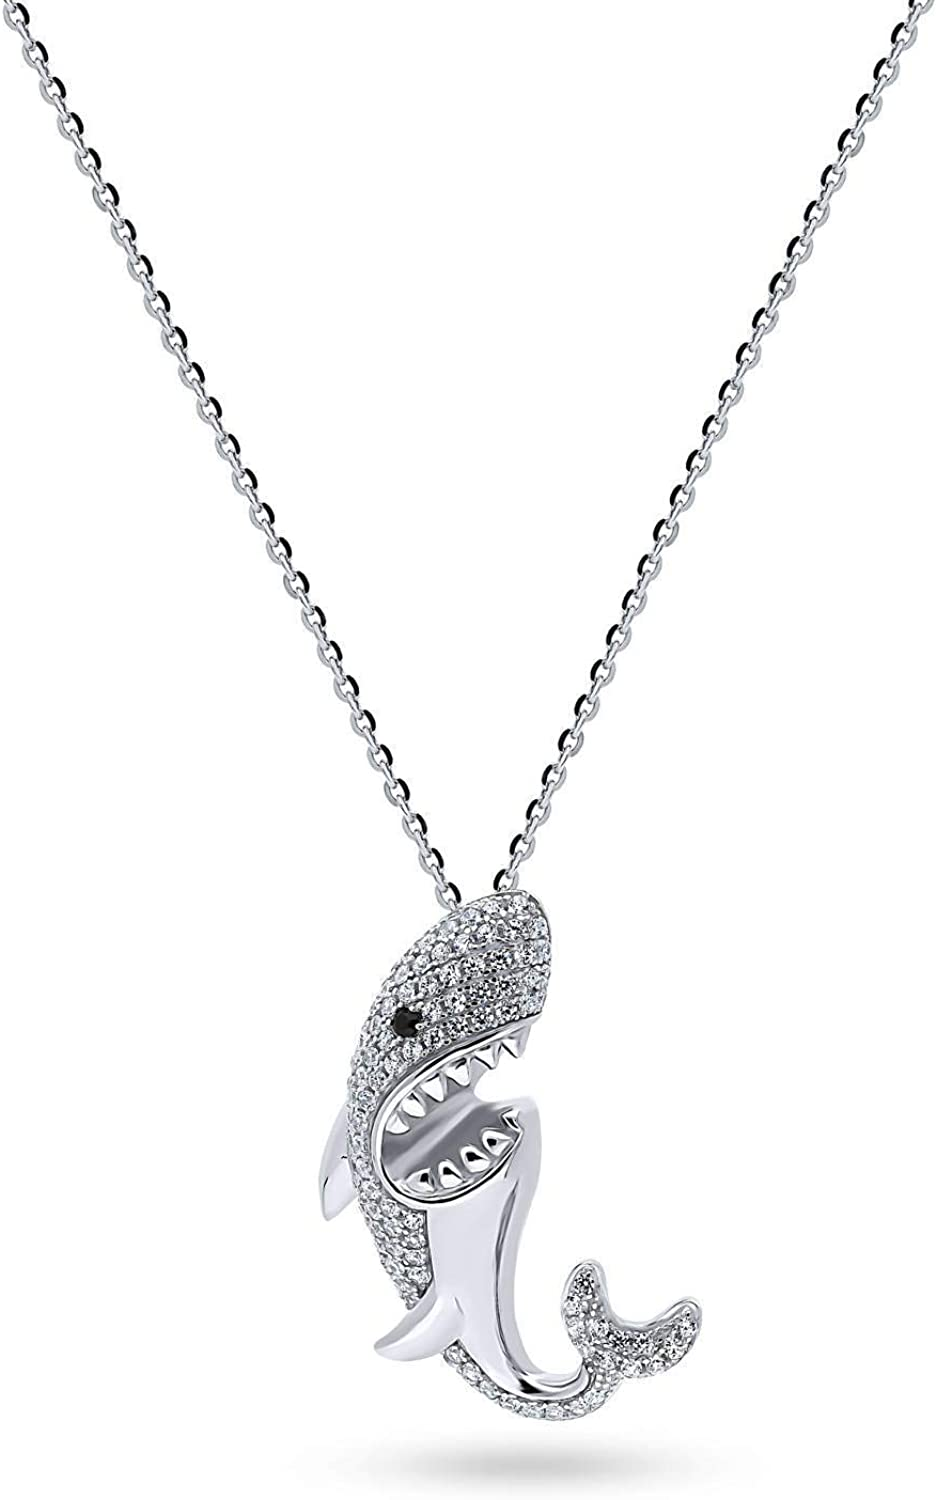 BERRICLE Rhodium Plated Sterling Silver Cubic Zirconia CZ Shark Fashion Pendant Necklace